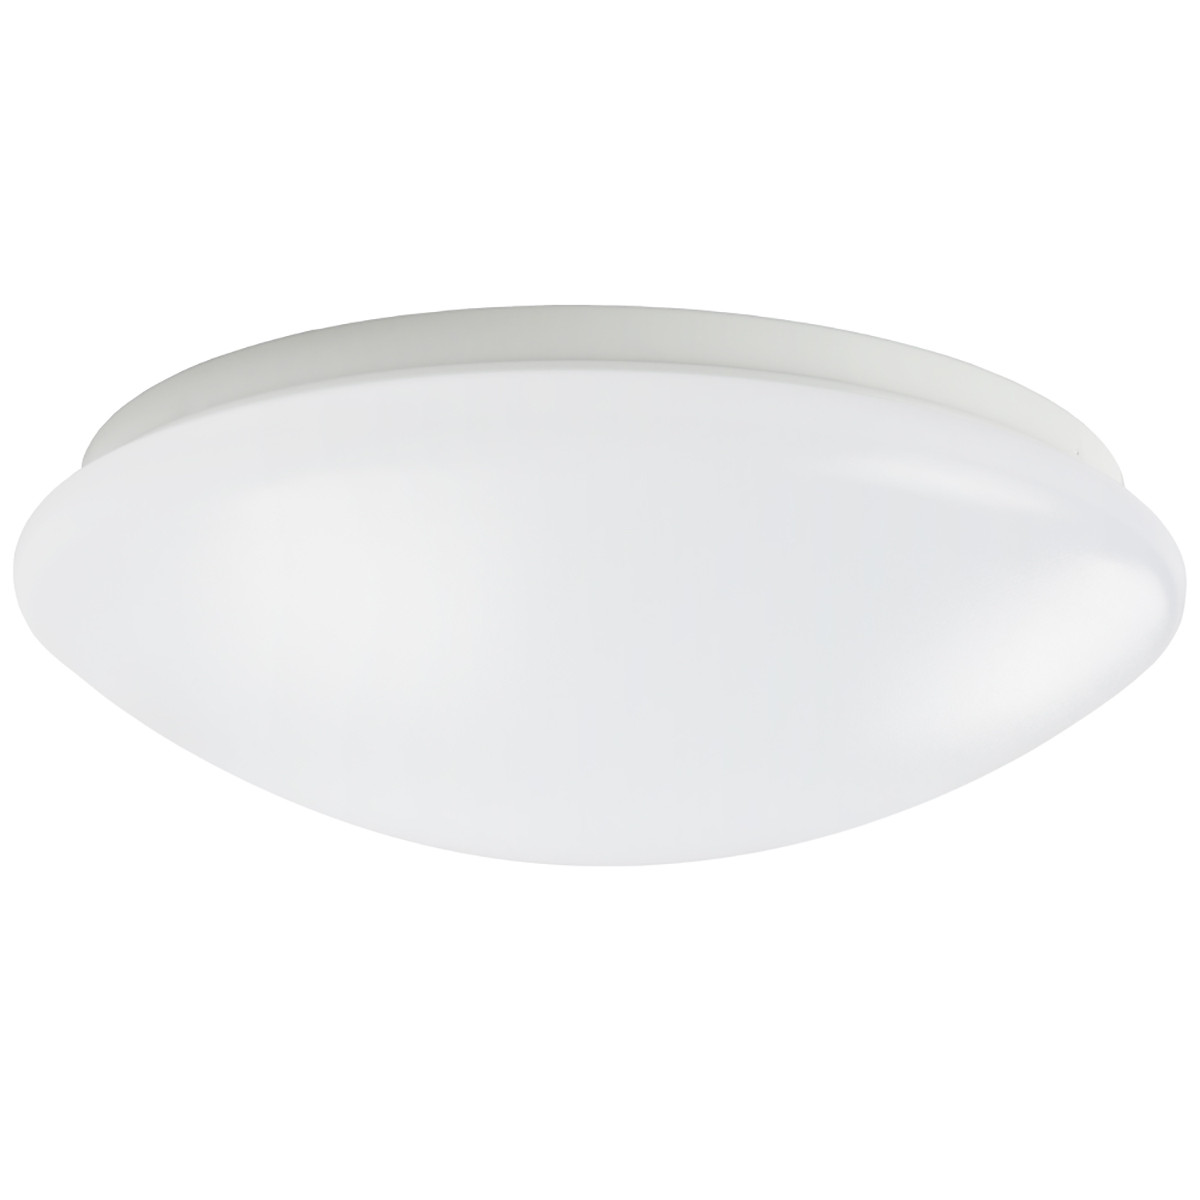 18W 11.40 inch Modern LED Flush Mount Ceiling Light Fixture for Any Room Round Acrylic Shade White Finish Mushroom Shape and CCT changable with RF control